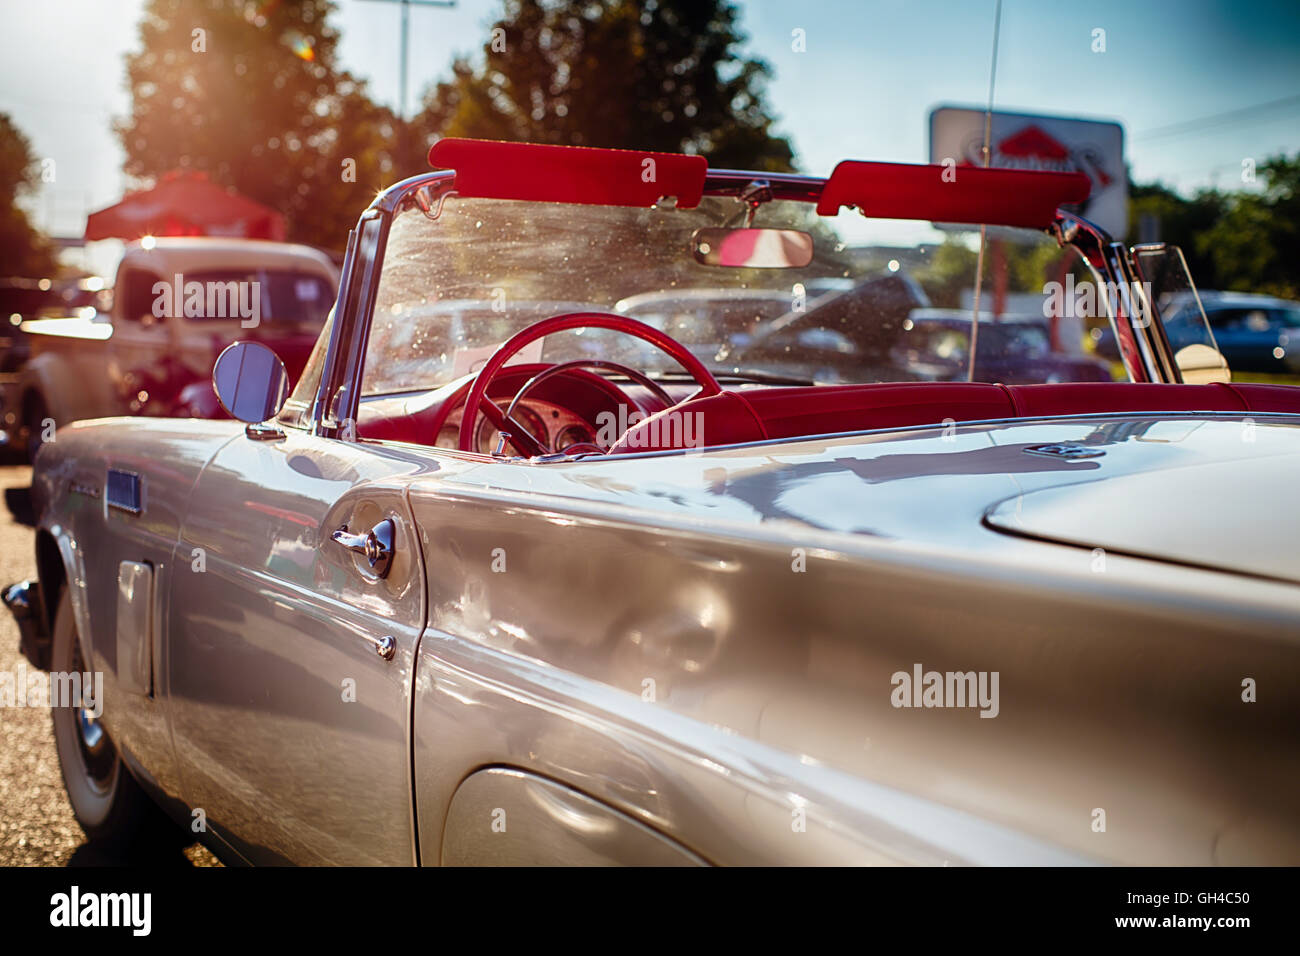 Low Angle View of a Classic American Convertible in a Drive In Parking Lot During Warm Summer Afternoon, New Jersey, - Stock Image